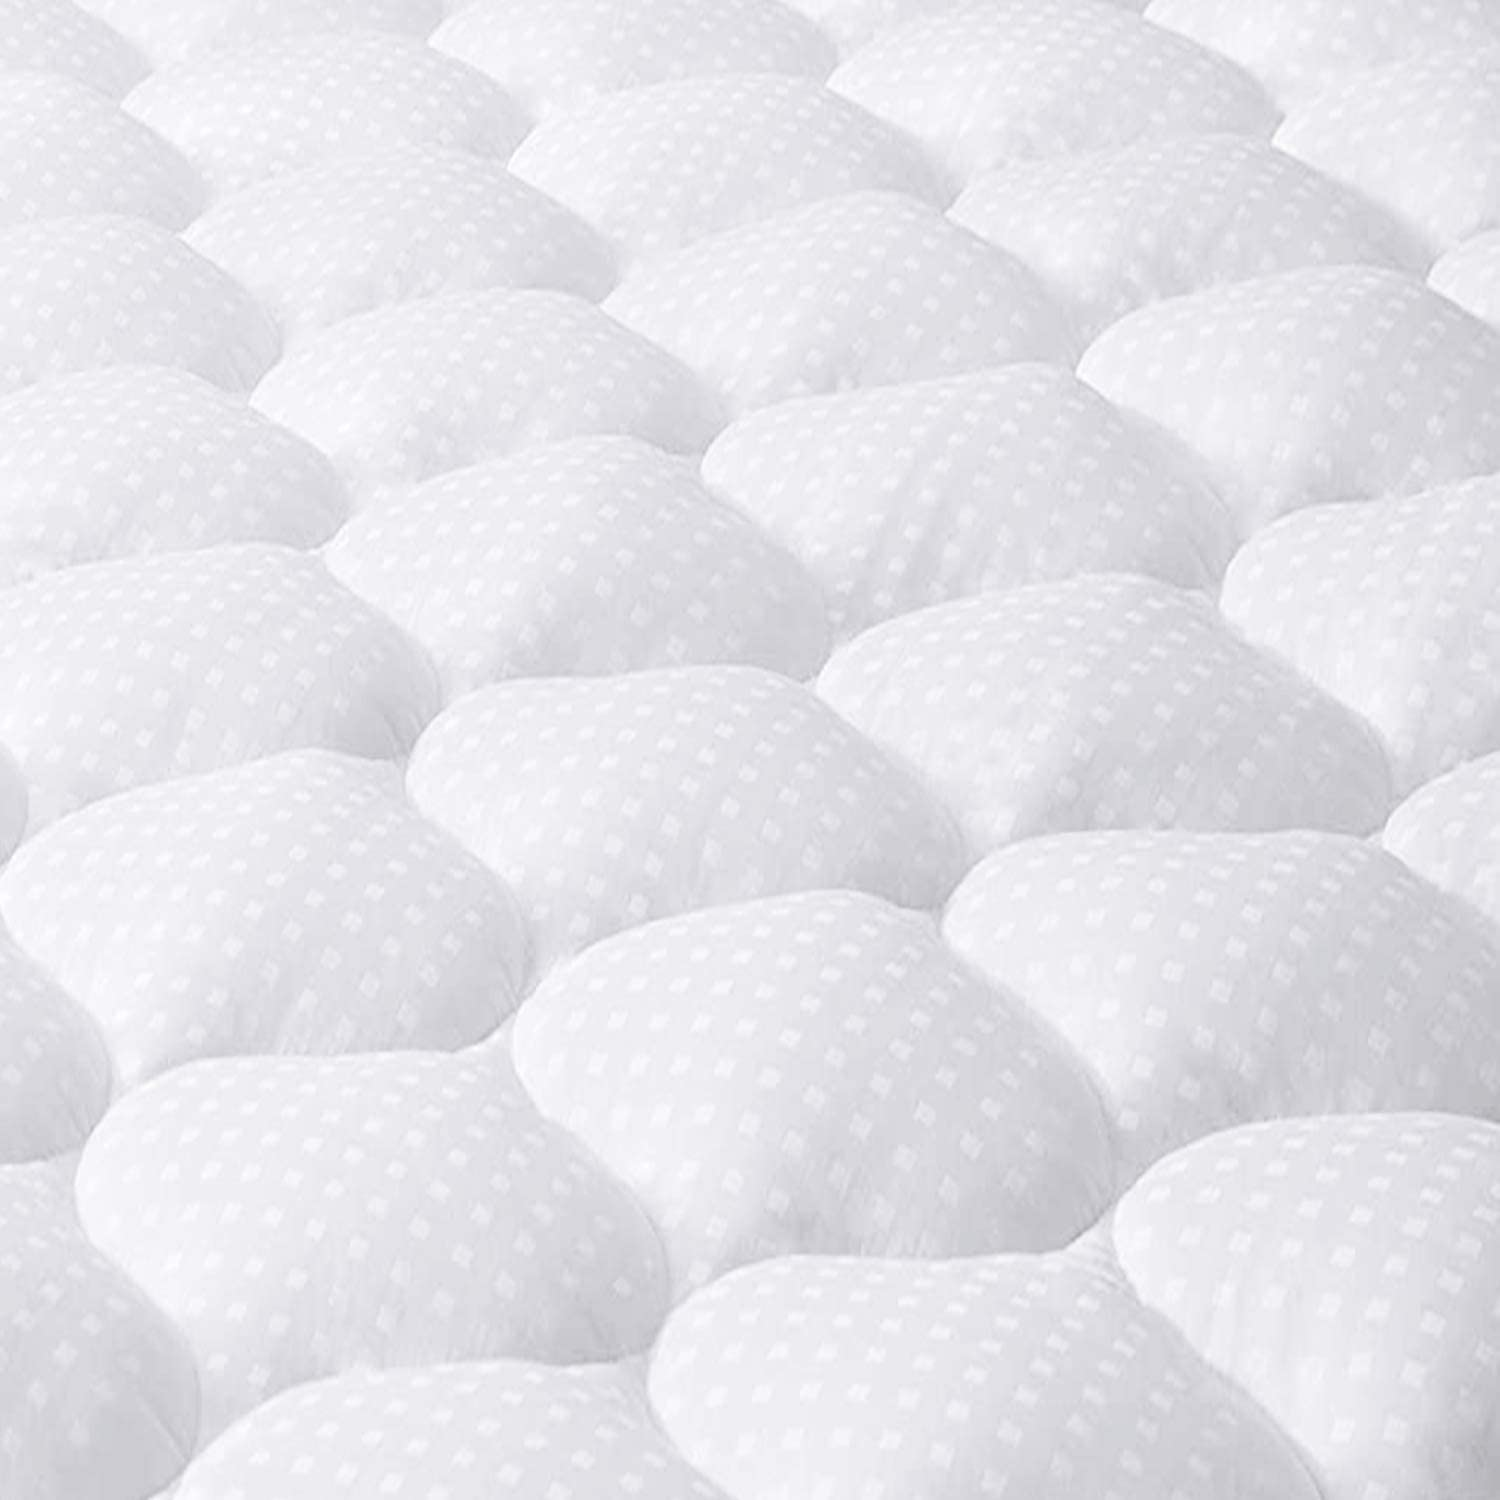 JUEYINGBAILI Mattress Pad Full Mattress Topper - Quilted Fitted Cooling Full Mattress Pads - Overfilled with Breathable Snow Down Alternative Filling Mattress Cover